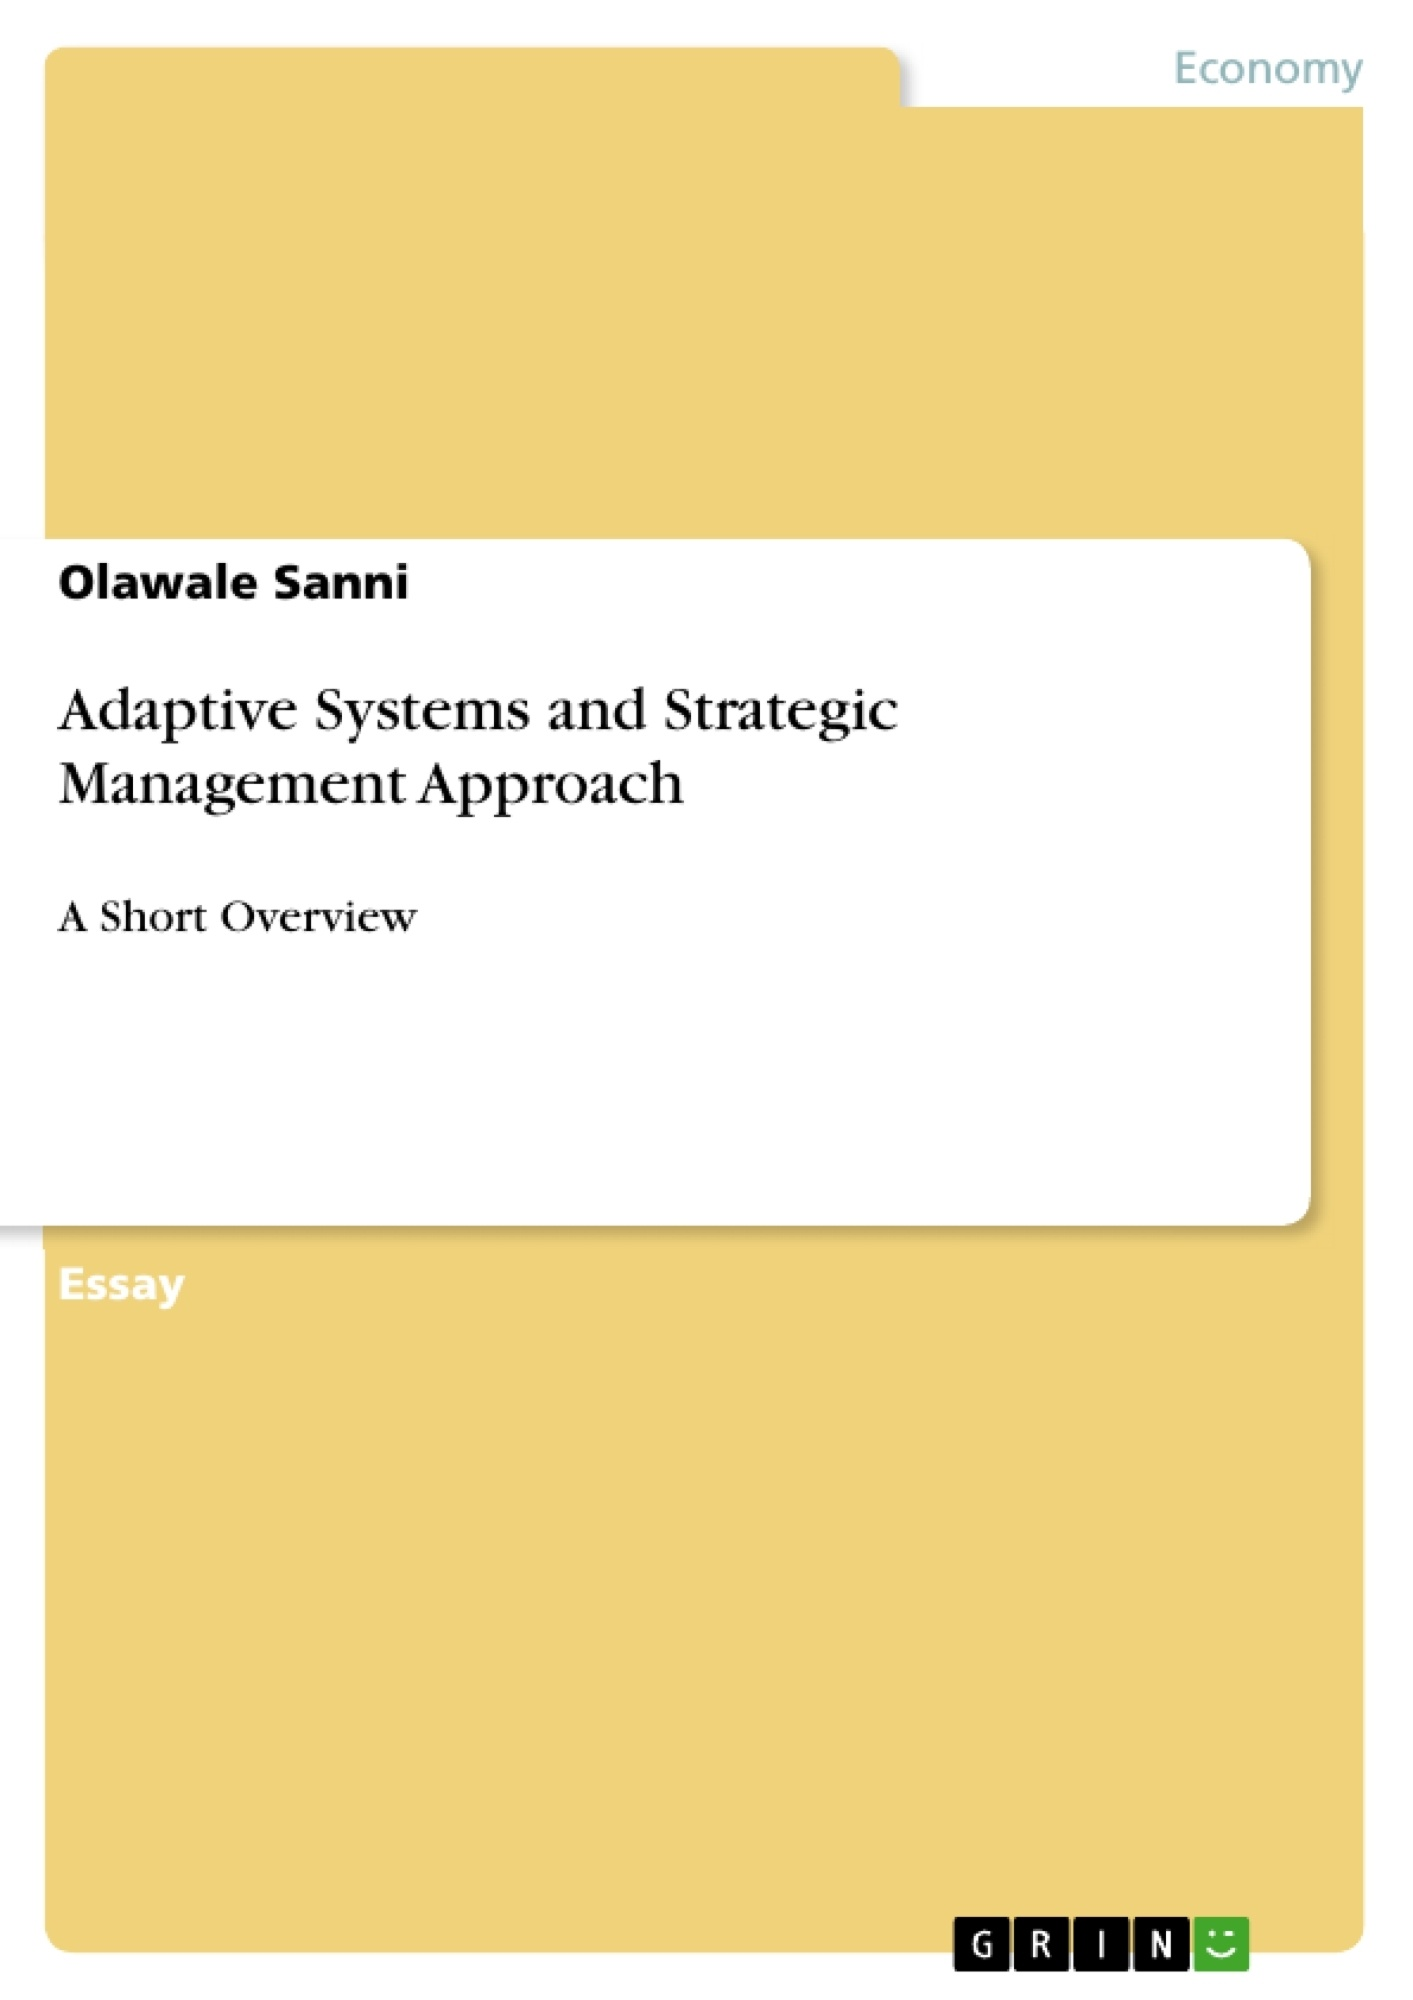 Title: Adaptive Systems and Strategic Management Approach